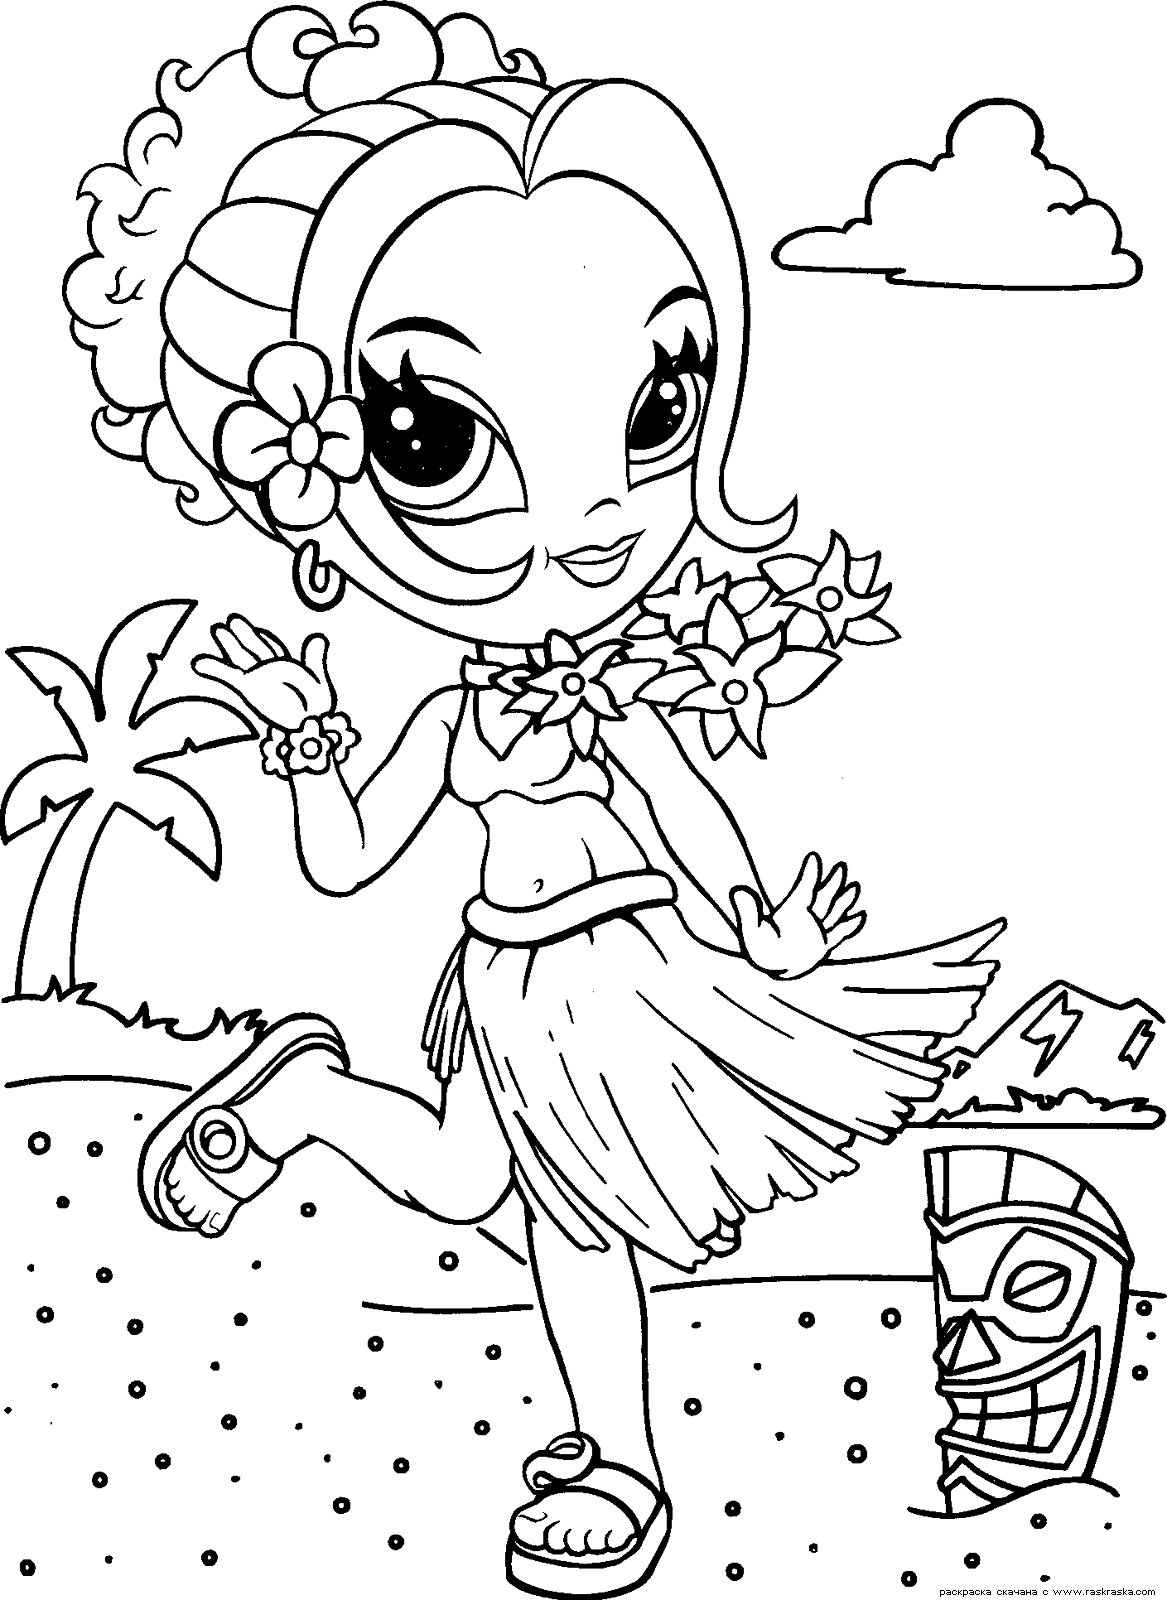 wwwfree coloring pagescom free coloring pages adult coloring worldwide coloring pagescom wwwfree